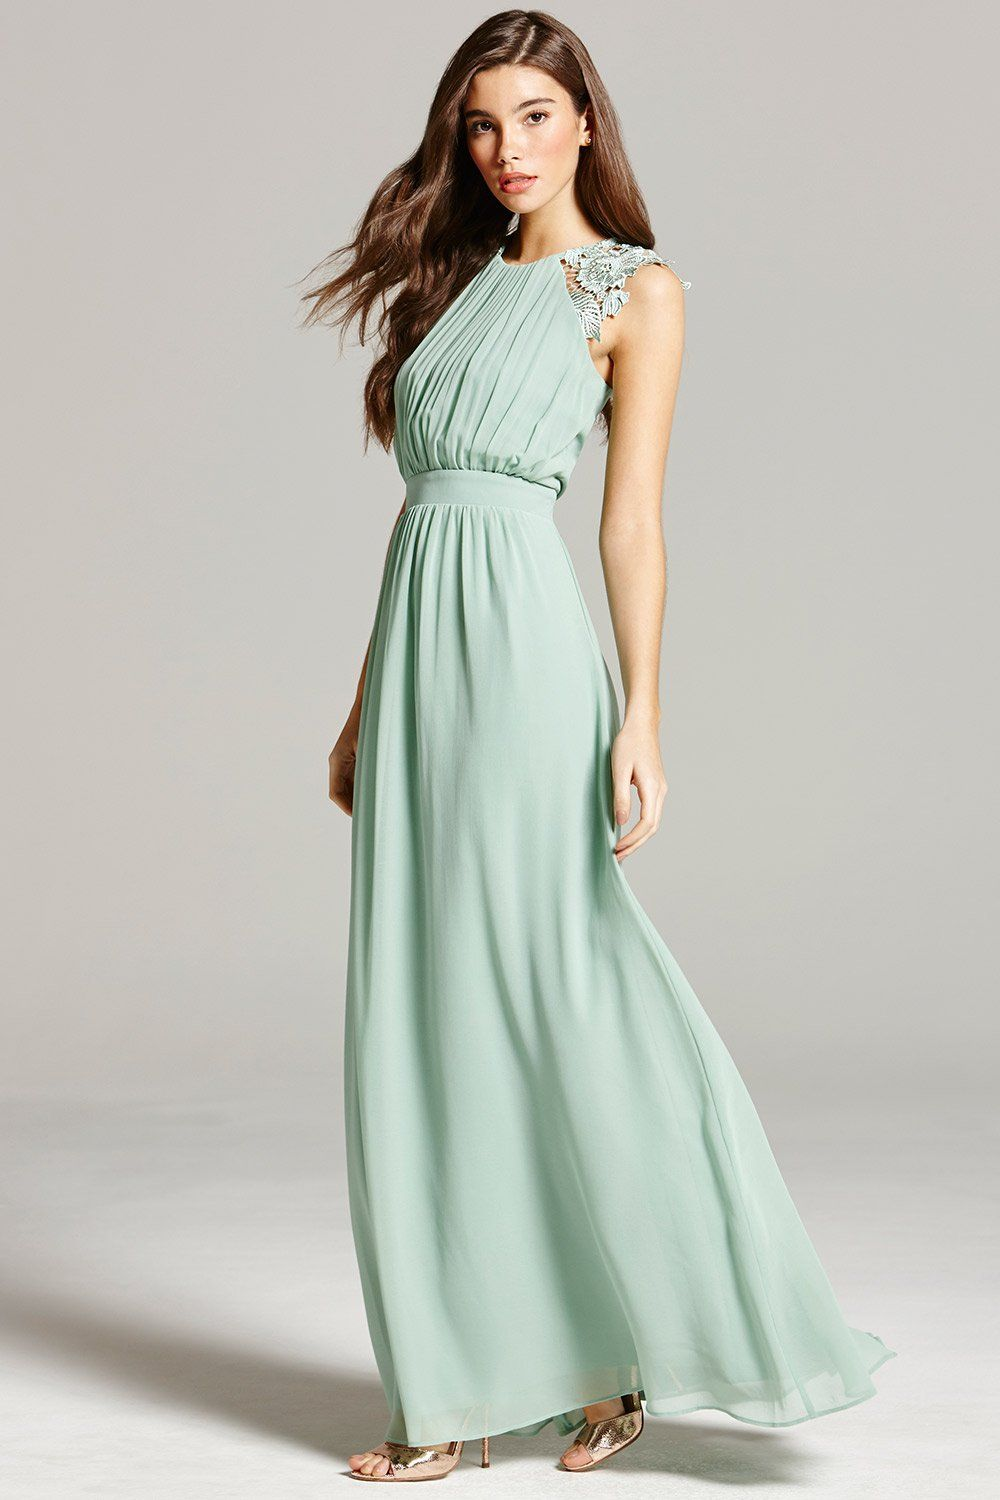 maxi-dress-pleated | Pleated Maxi Dress | Pinterest | Maxi dresses ...